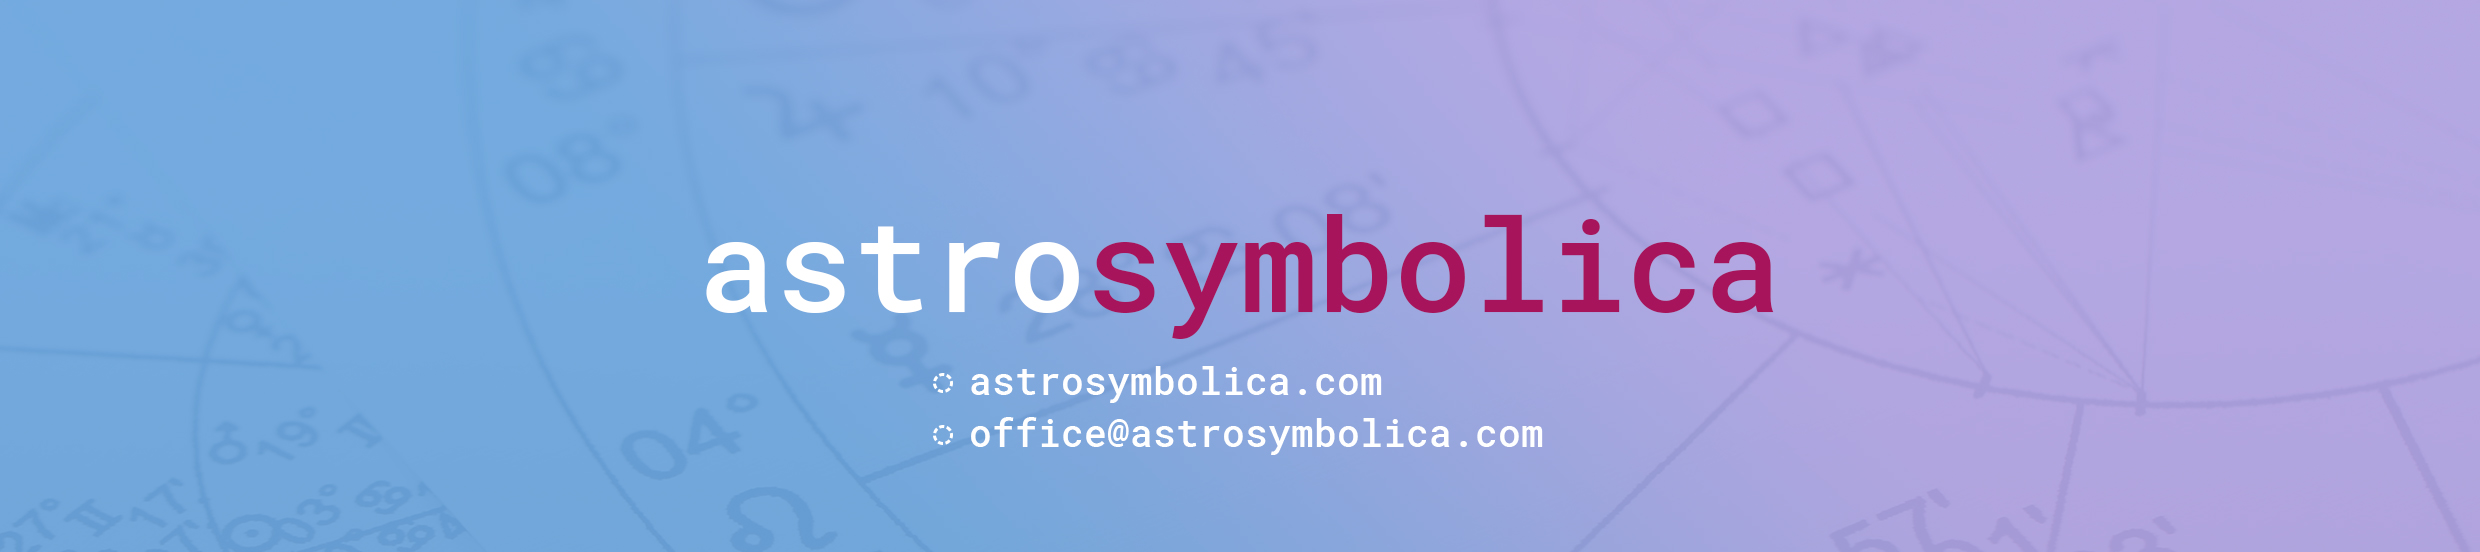 Astrology online course - Learn with Astrosymbolica